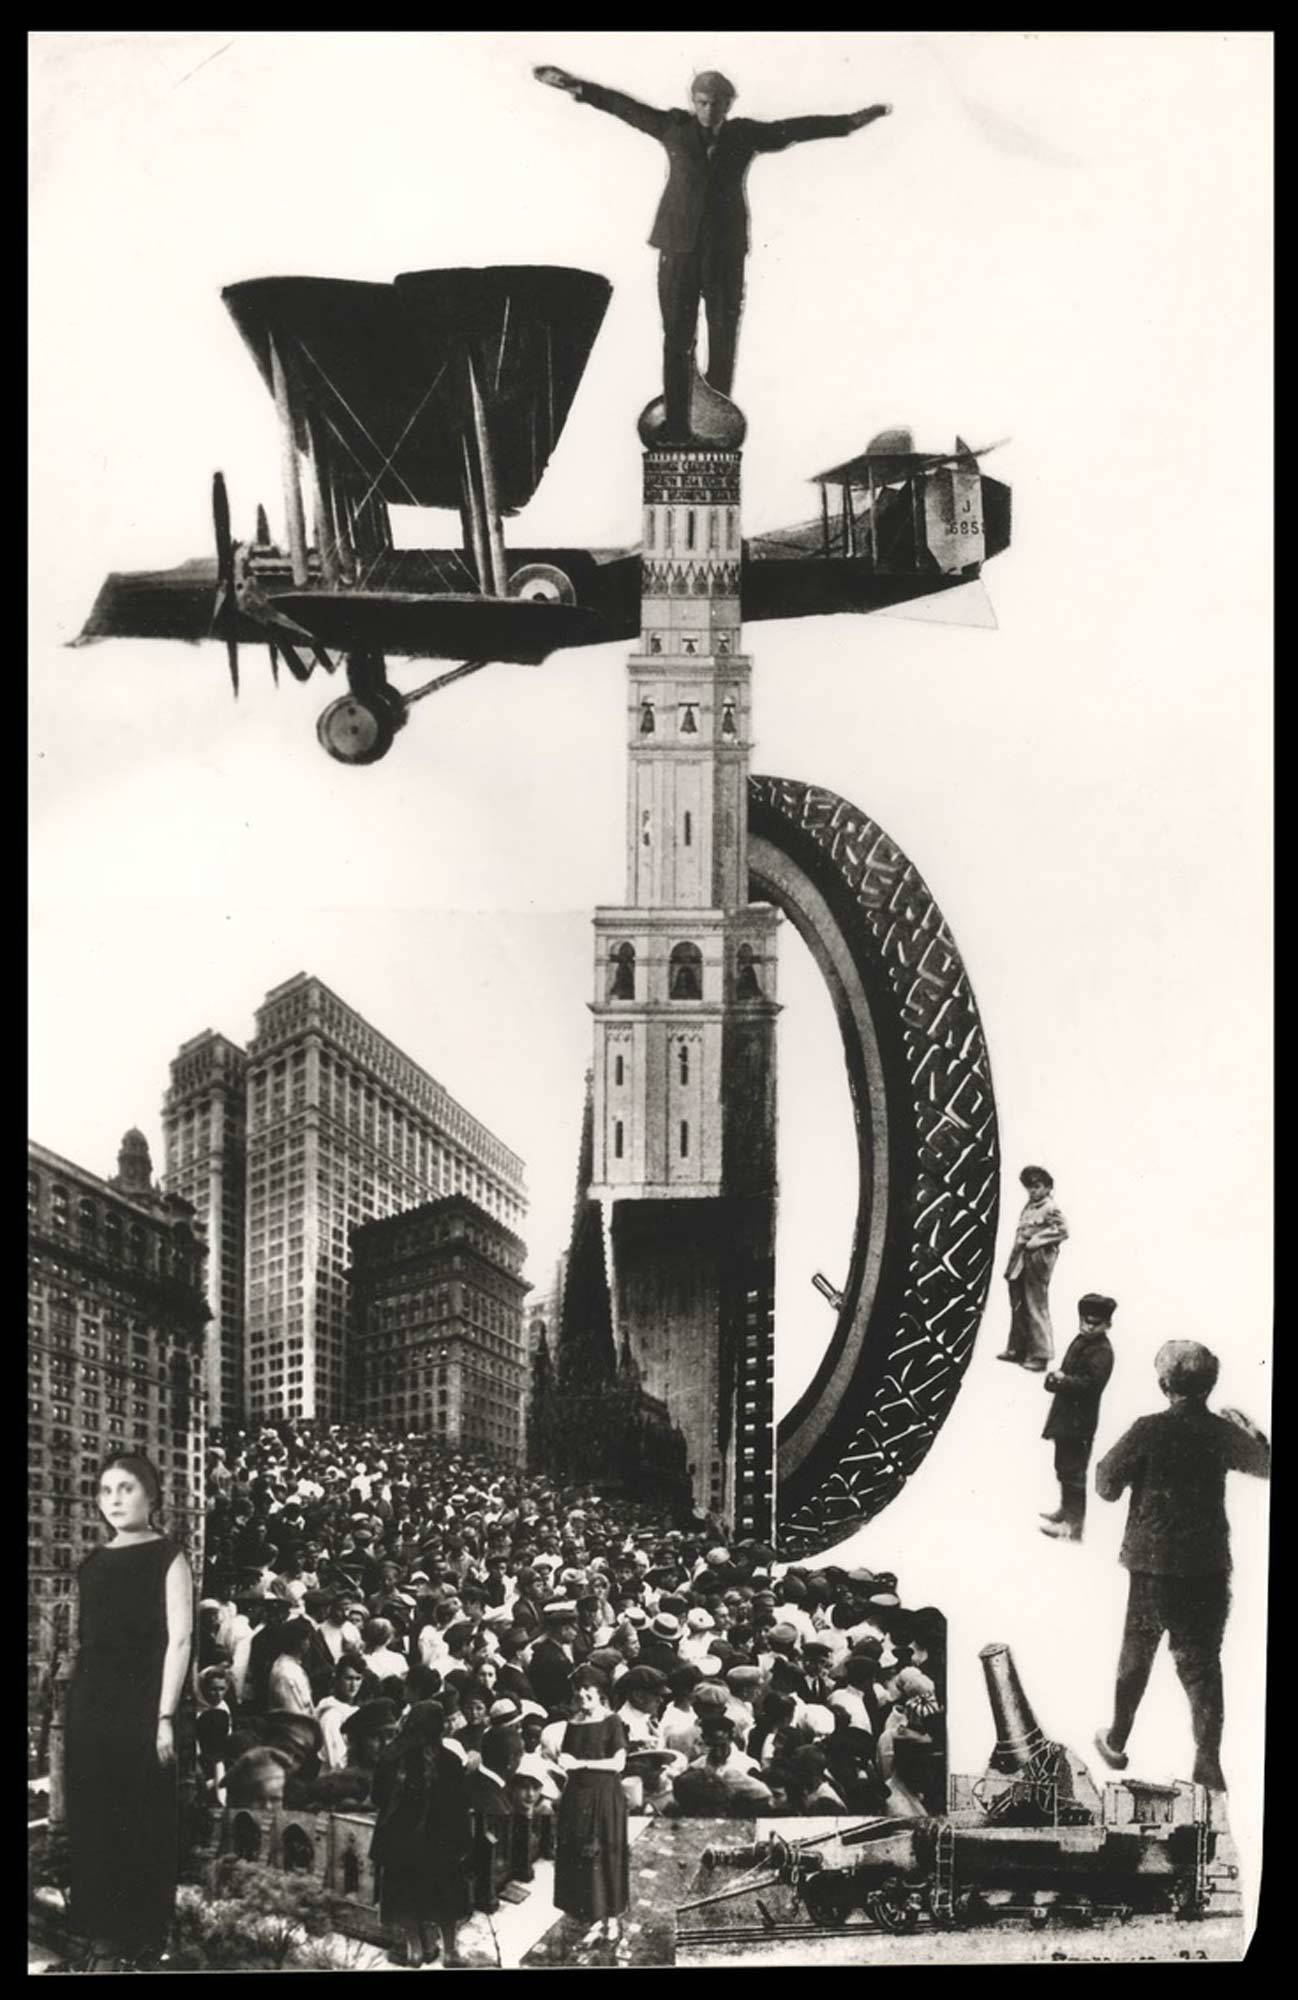 Aleksandr-Rodchenko-Photo_002